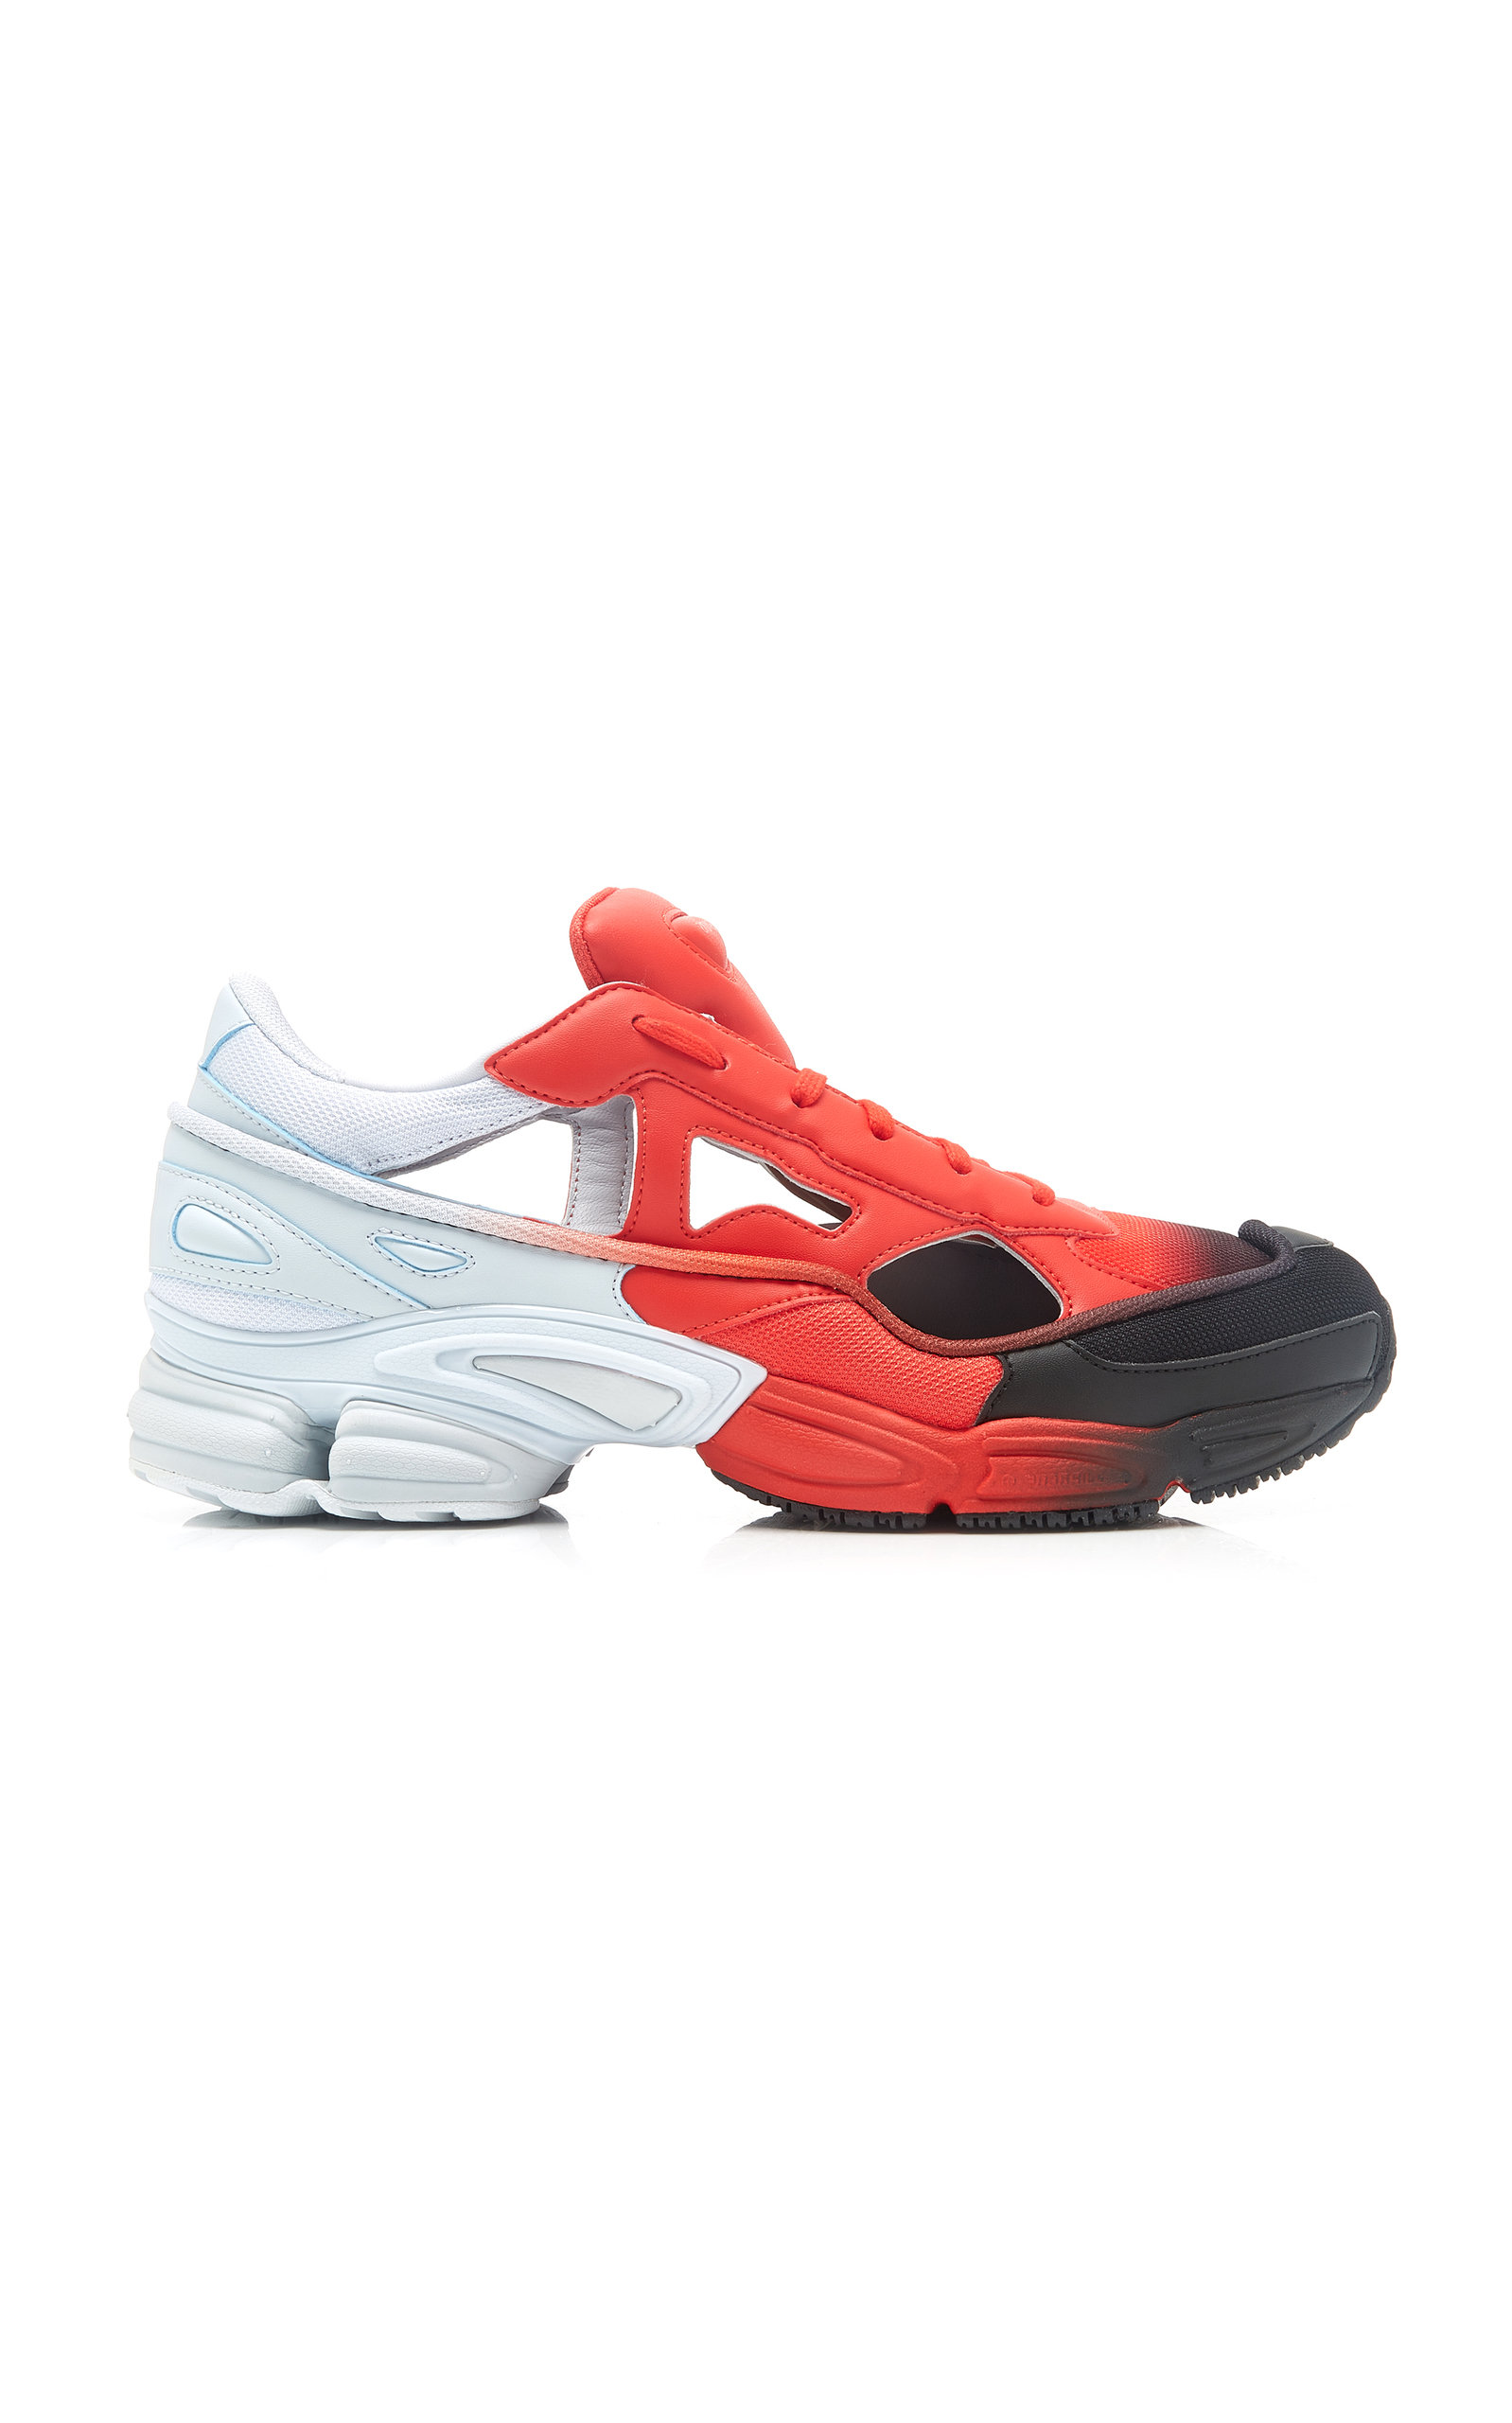 online store a5cd8 d23e1 adidas by Raf SimonsRS Replicant Ozweego Low-Top Sneakers. CLOSE. Loading